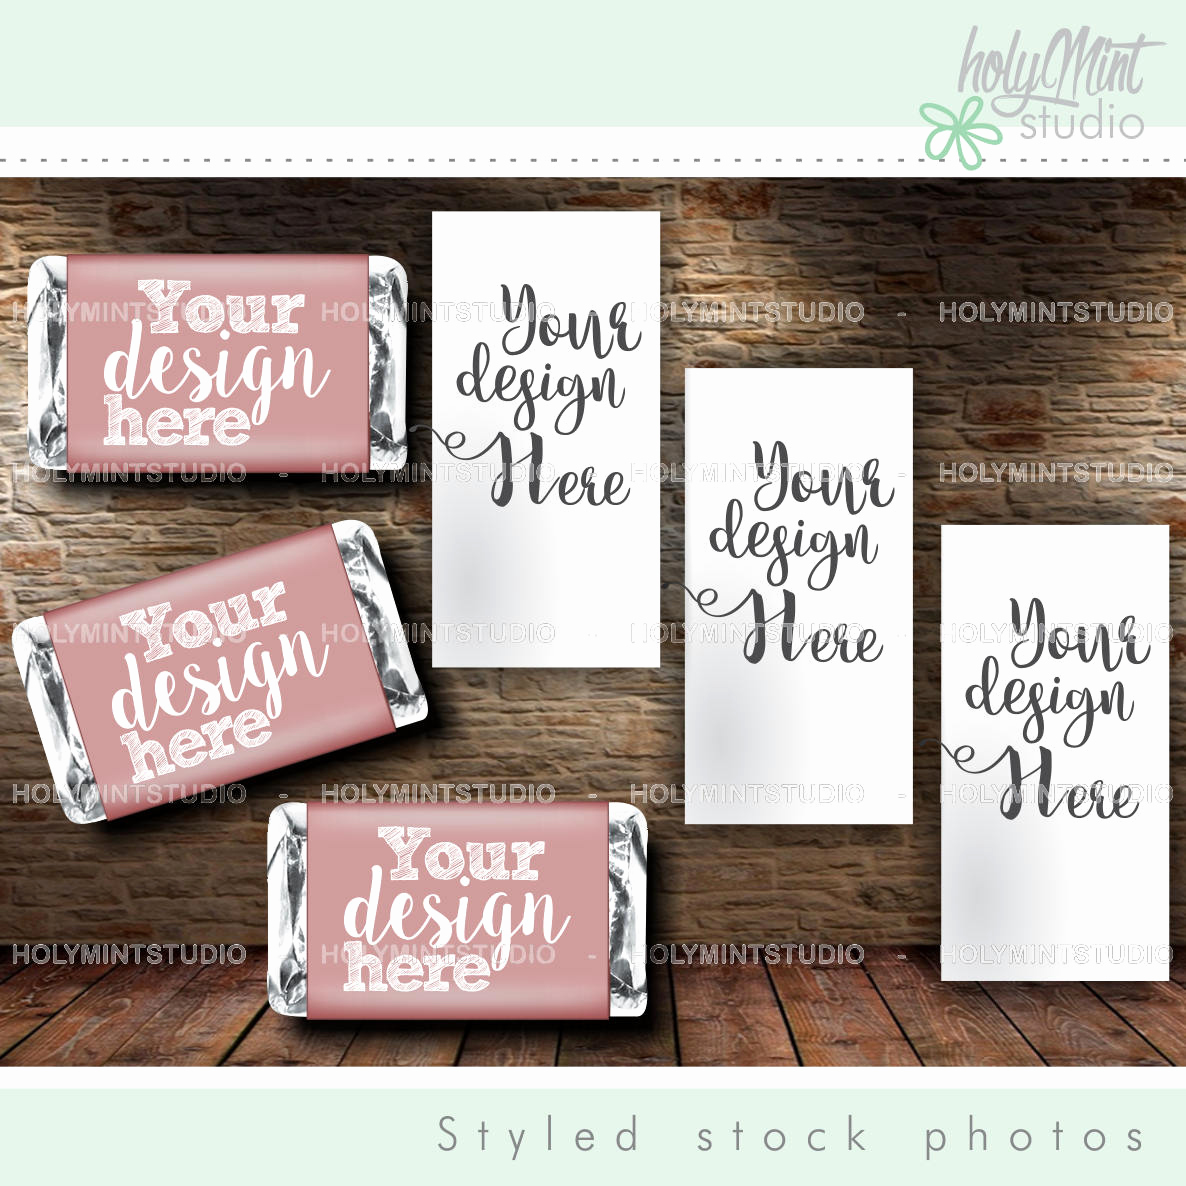 Candy Bar Wrapper Template Lovely Mini Hershey Bar Template Candy Bar Wrapper Template Hershey